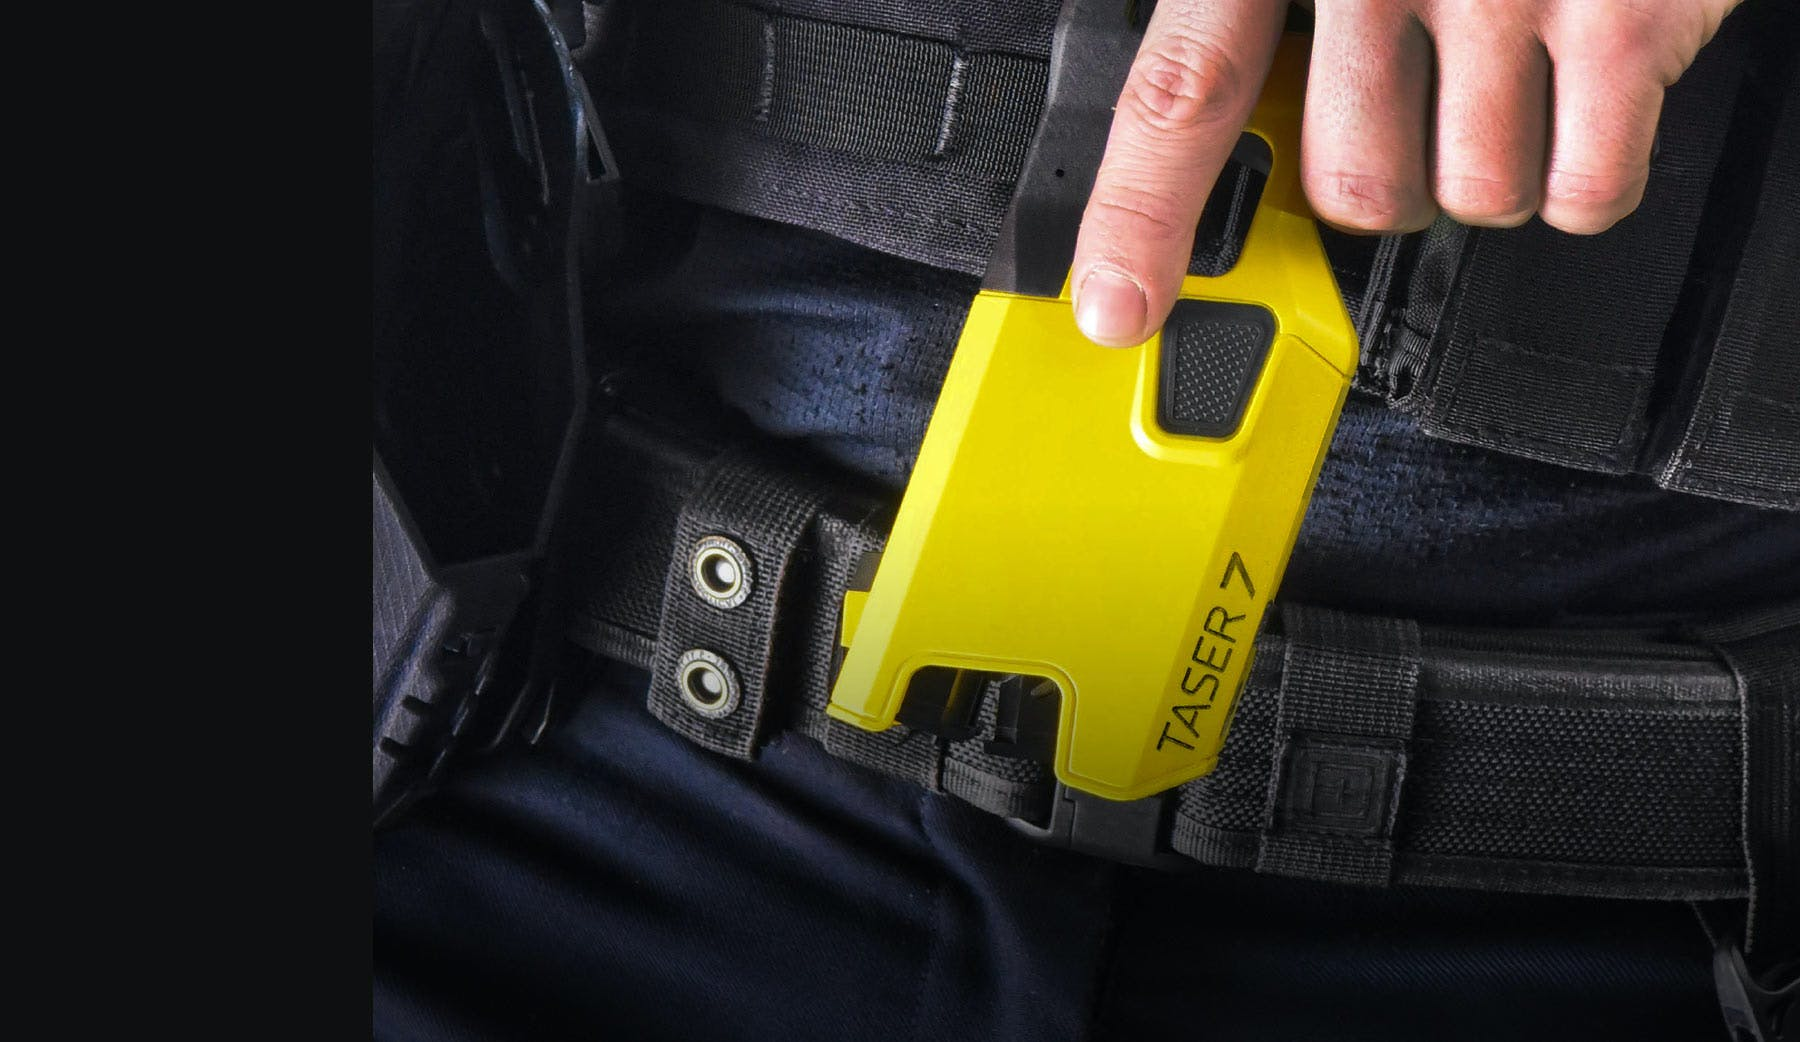 Taser Should Be Deployed Because Of Behaviour Not Age